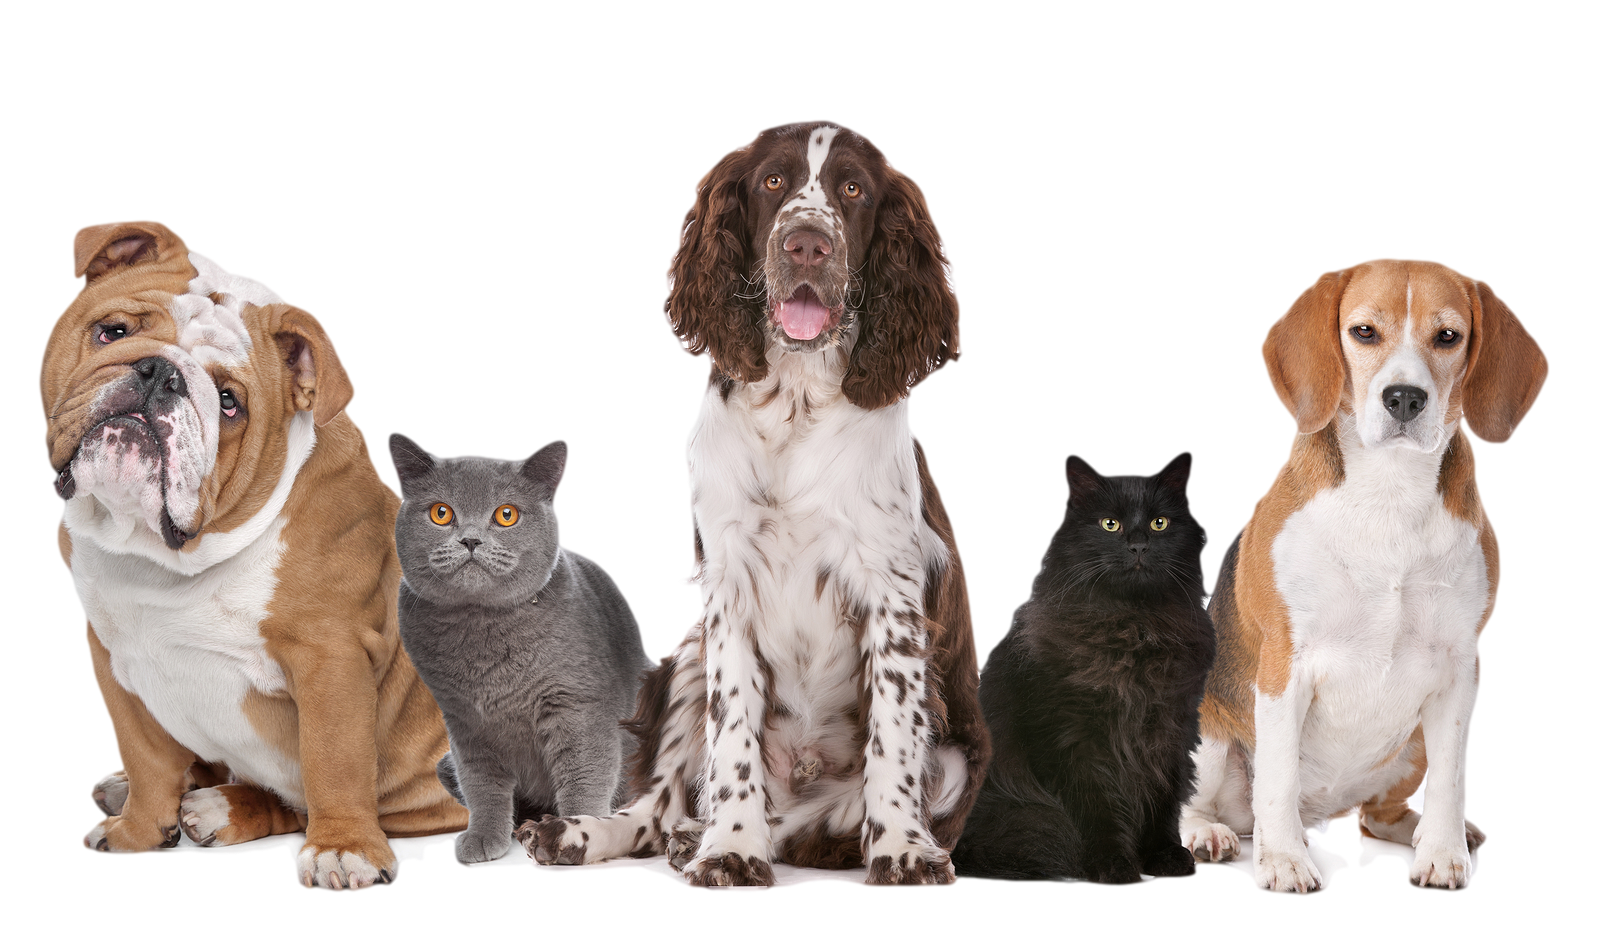 Dog PNG Transparent Image - Cat And Dog PNG No Background